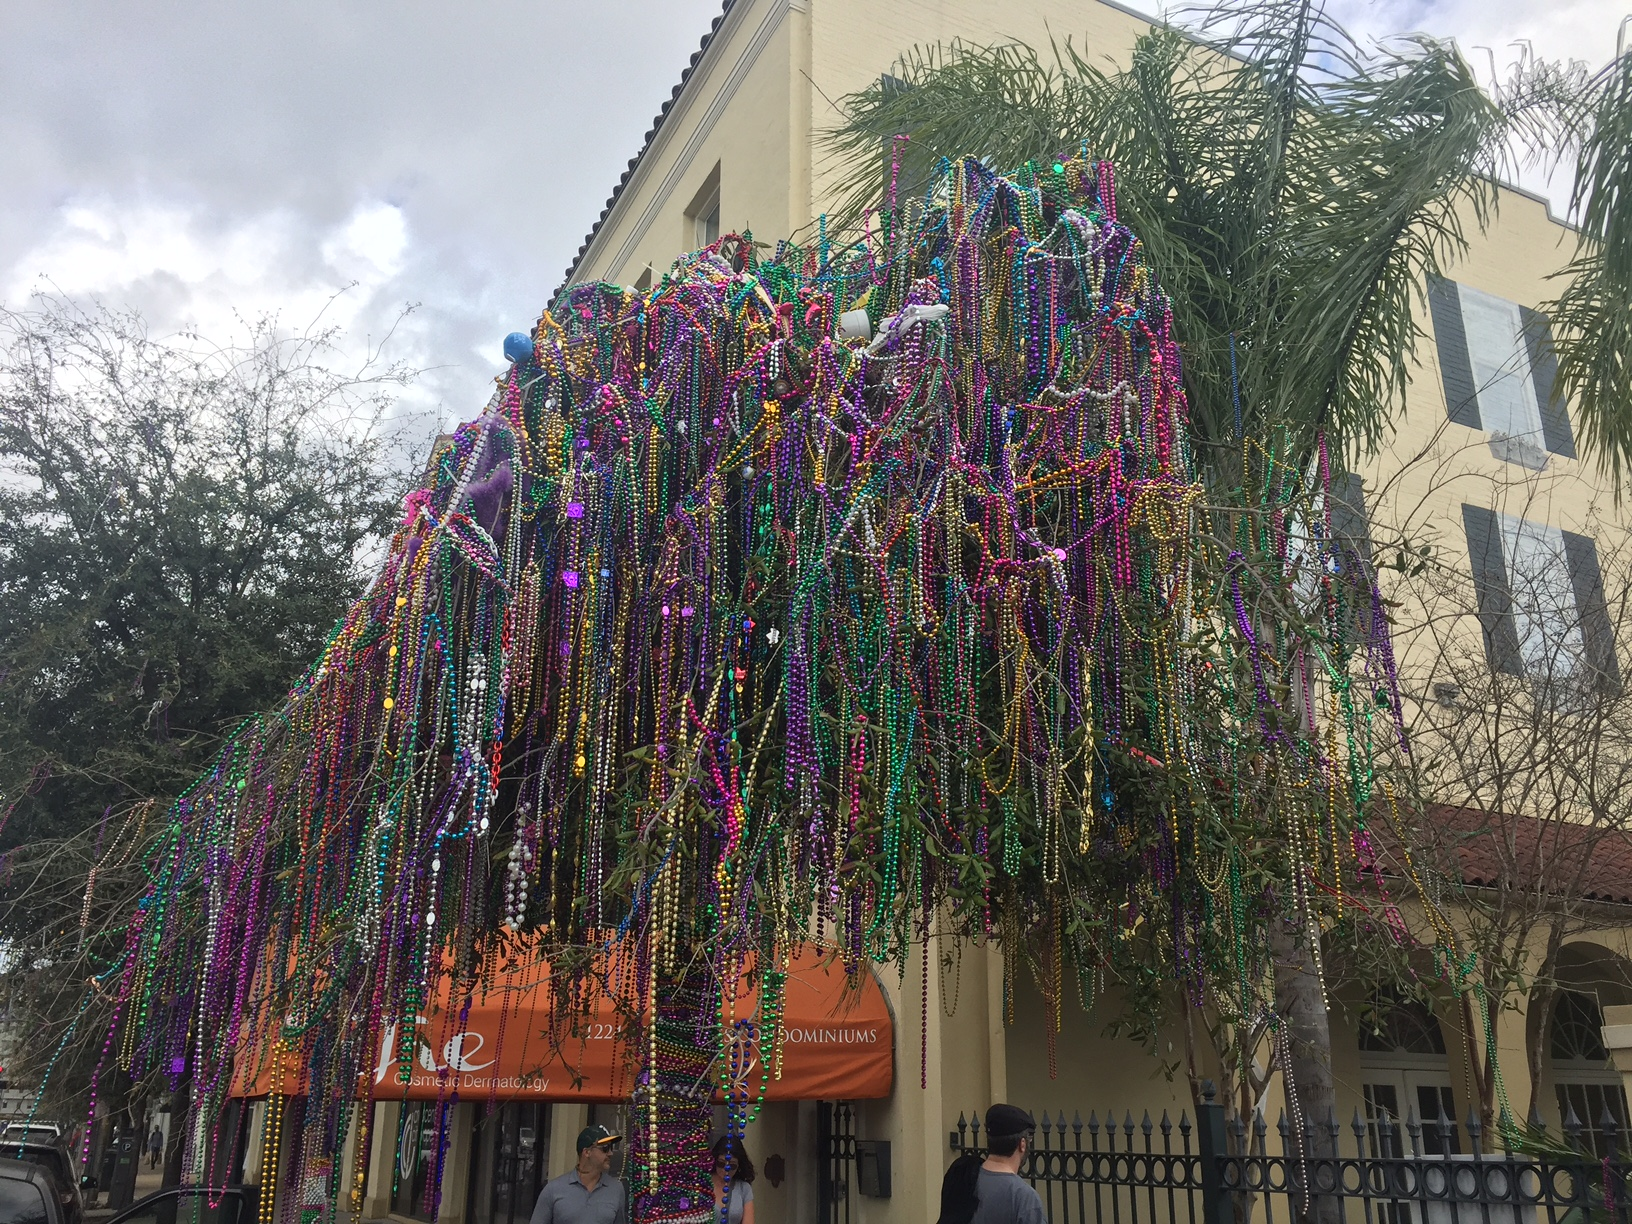 Note the weird phenomenon of trees along Mardi Gras parade routes suddenly blooming. All photos by Bob Thomas.